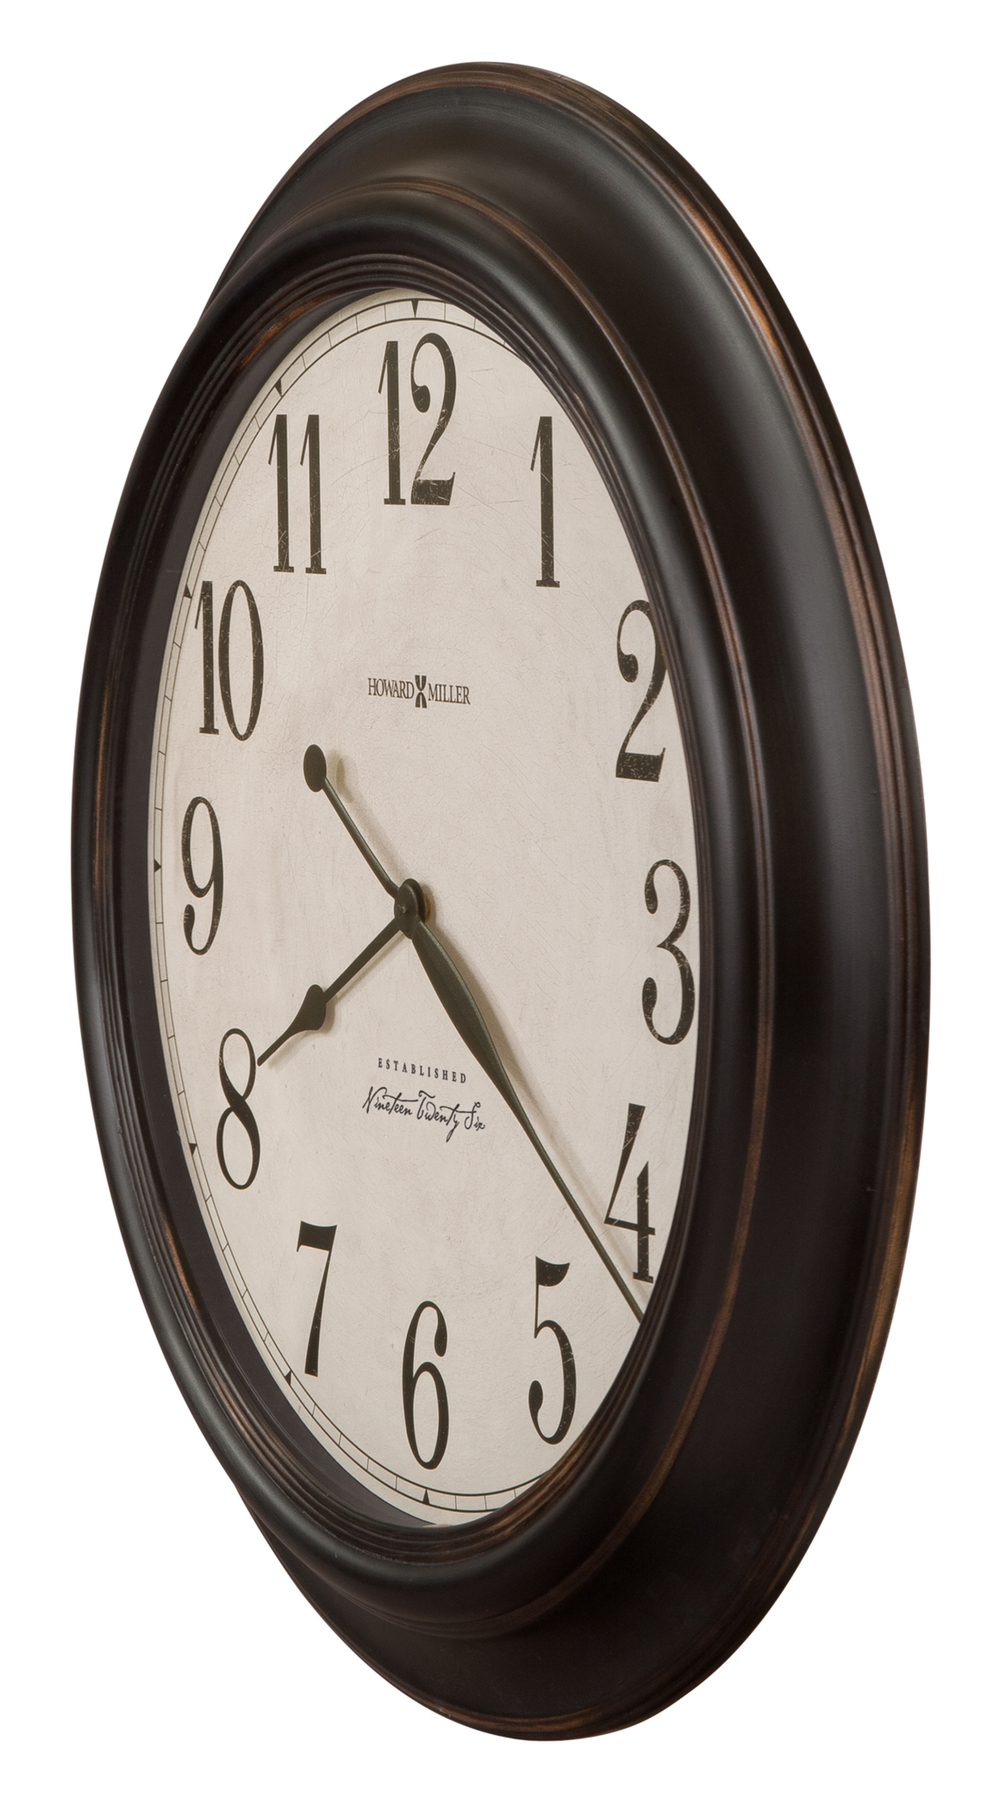 Howard Miller Clock - Ashby Wall Clock